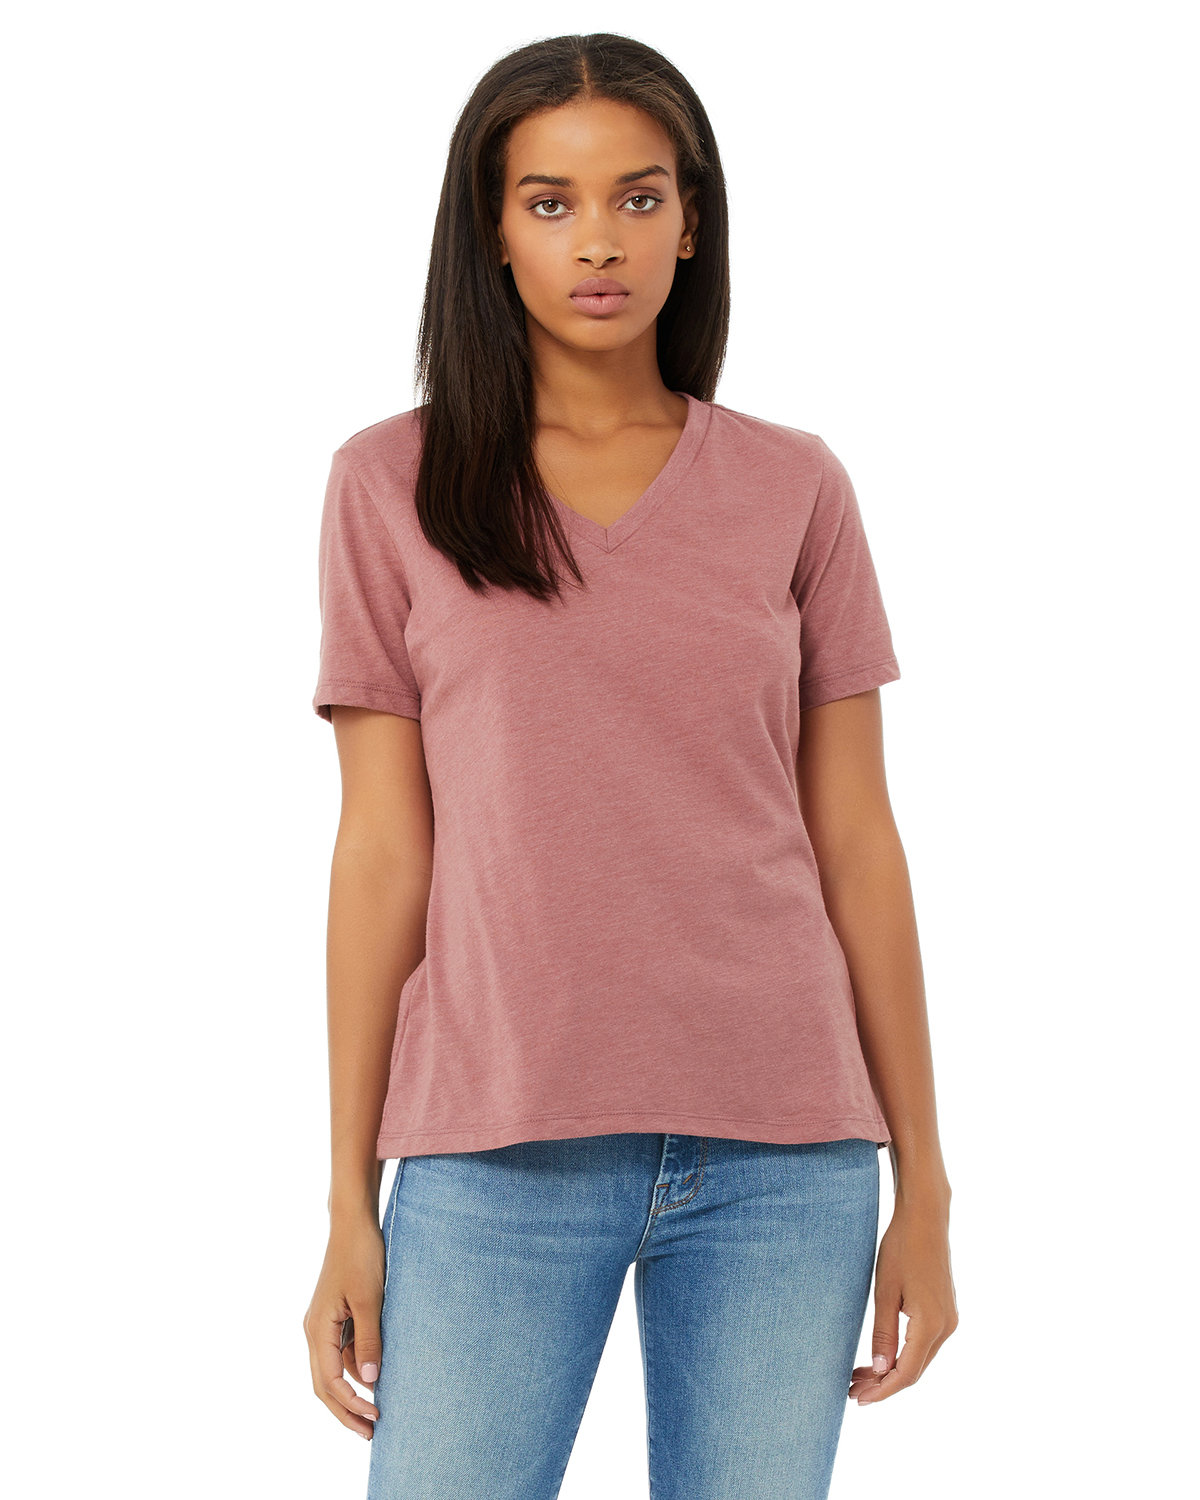 Bella + Canvas Ladies' Relaxed Jersey V-Neck T-Shirt HEATHER MAUVE